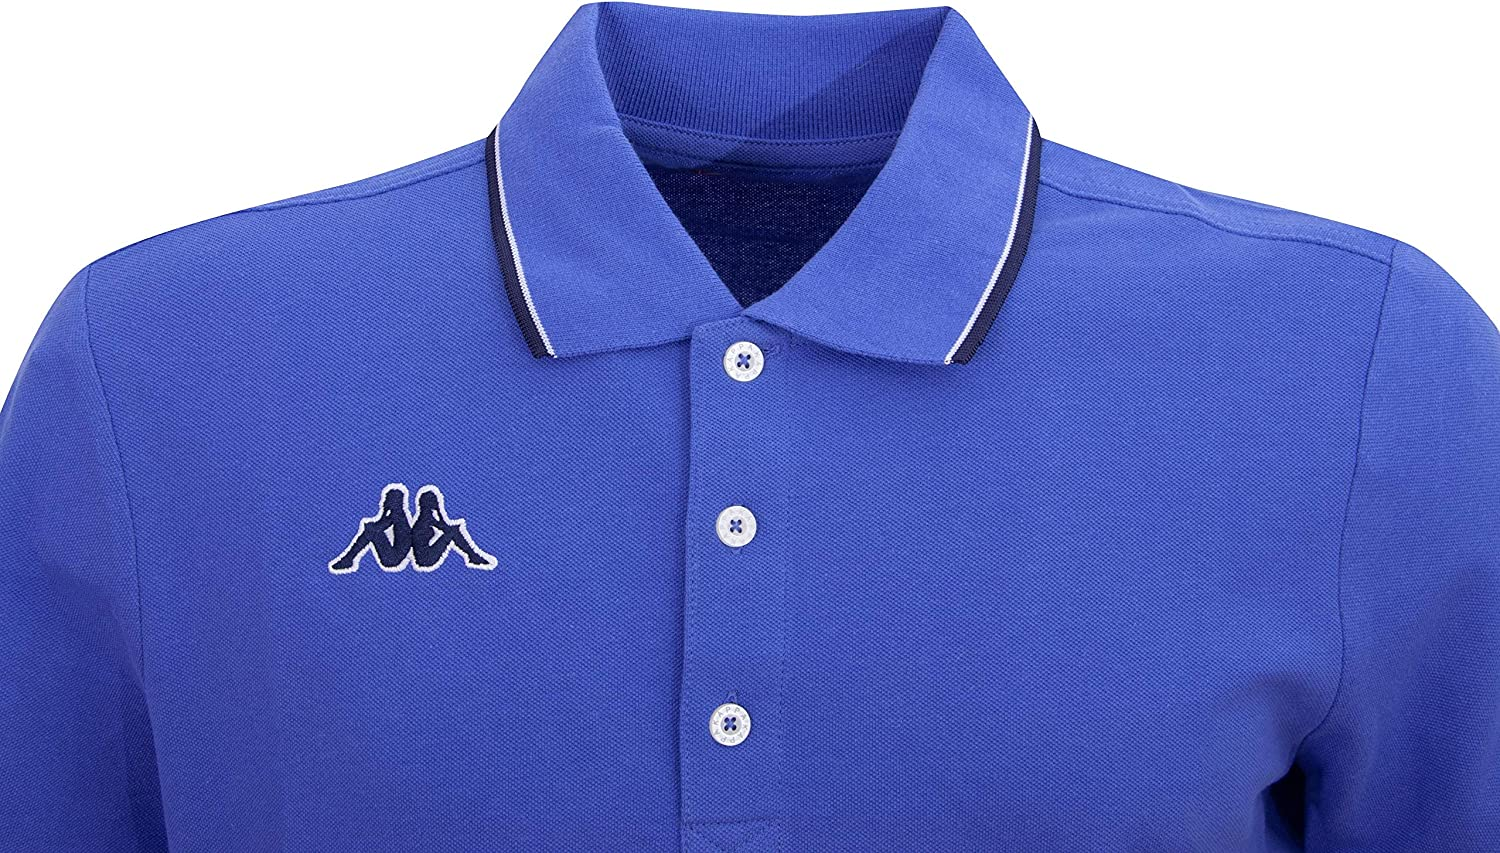 Kappa Men's Polo Shirt Woffen. 100% pique cotton with contrast stripes on the collar cuffs. 1 X Baja Blue.